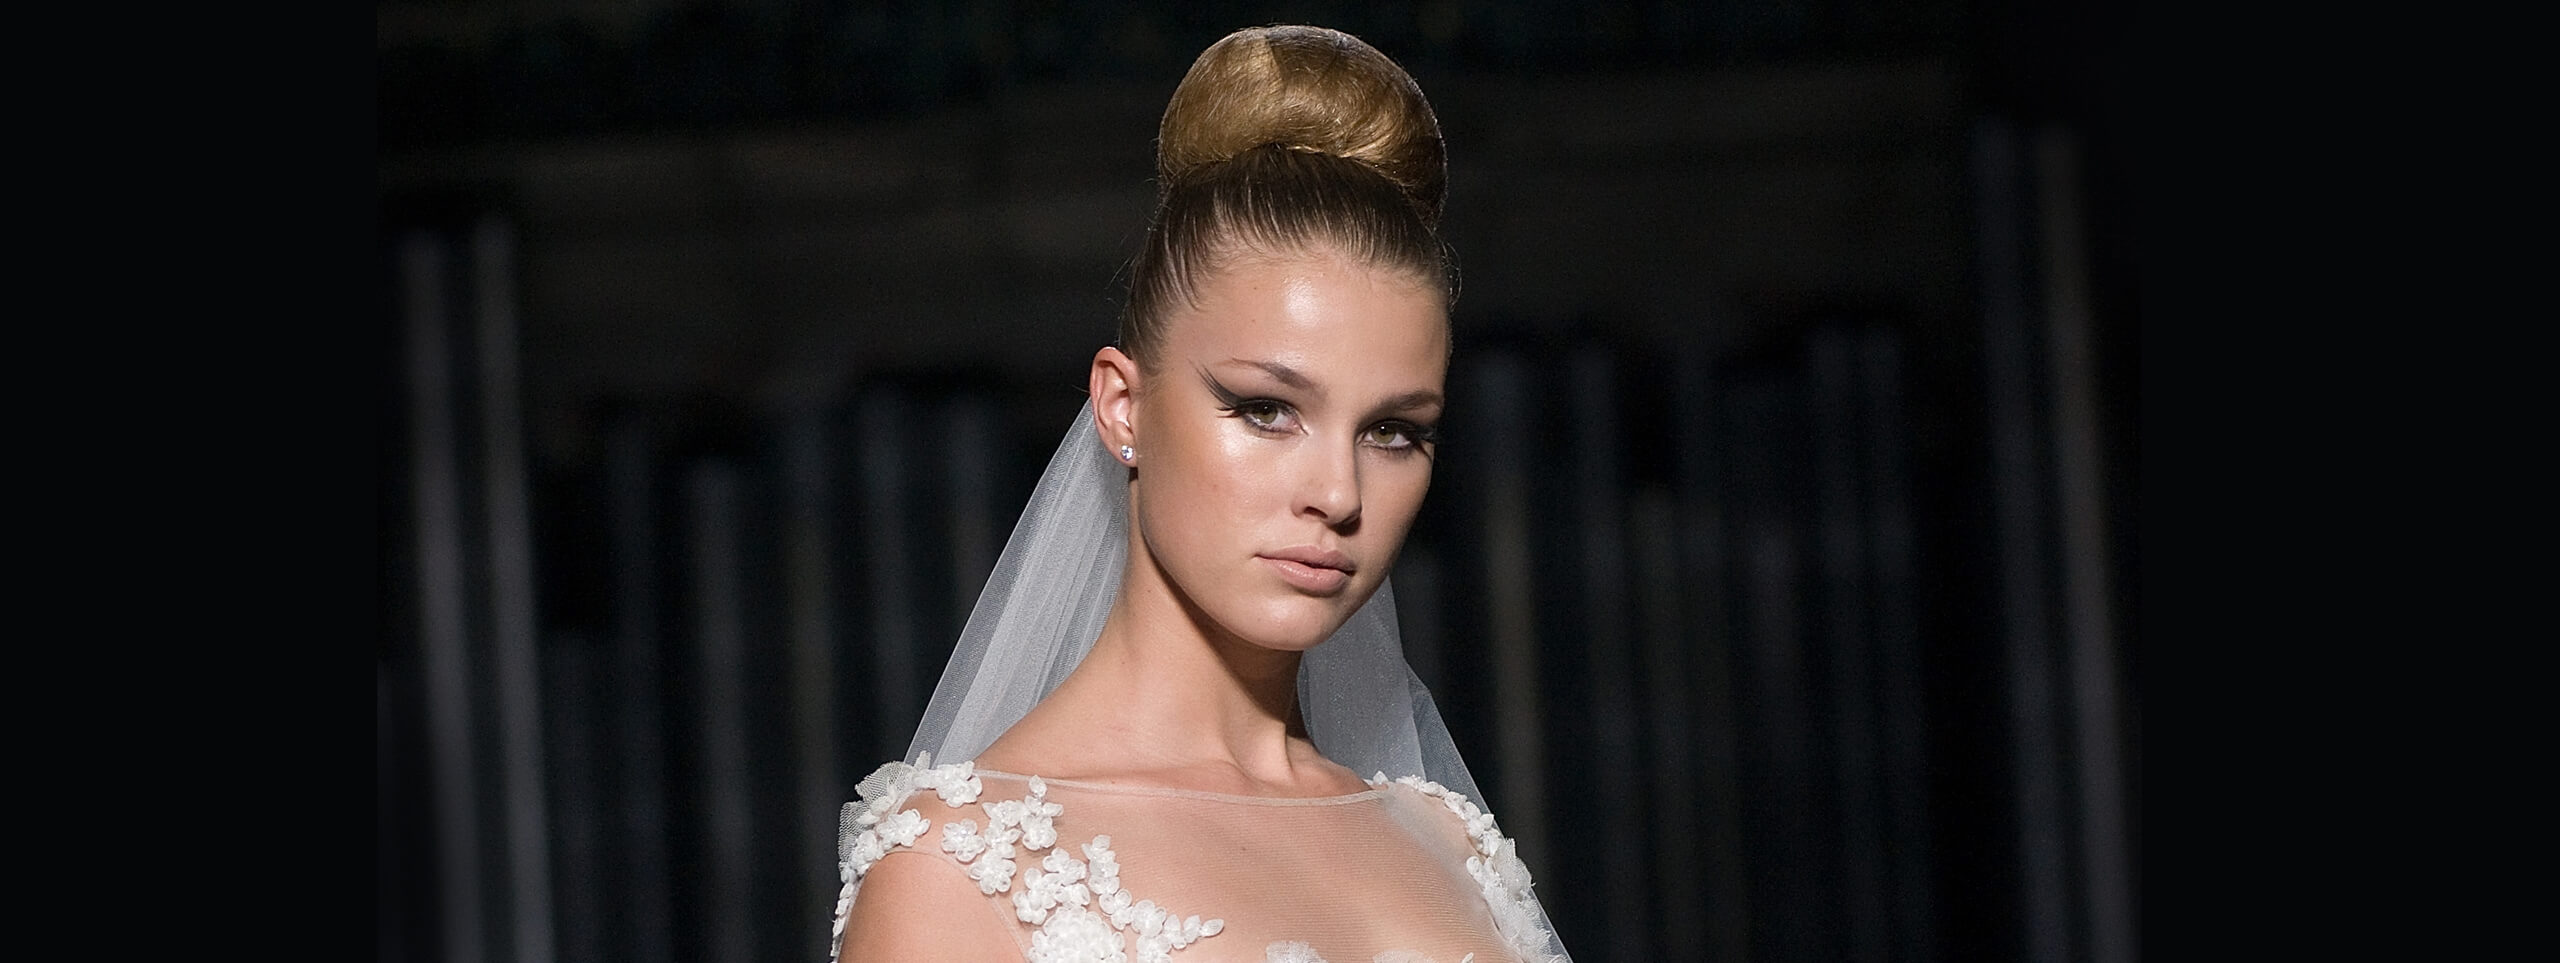 Model wearing a bridal hairstyle and wedding dress